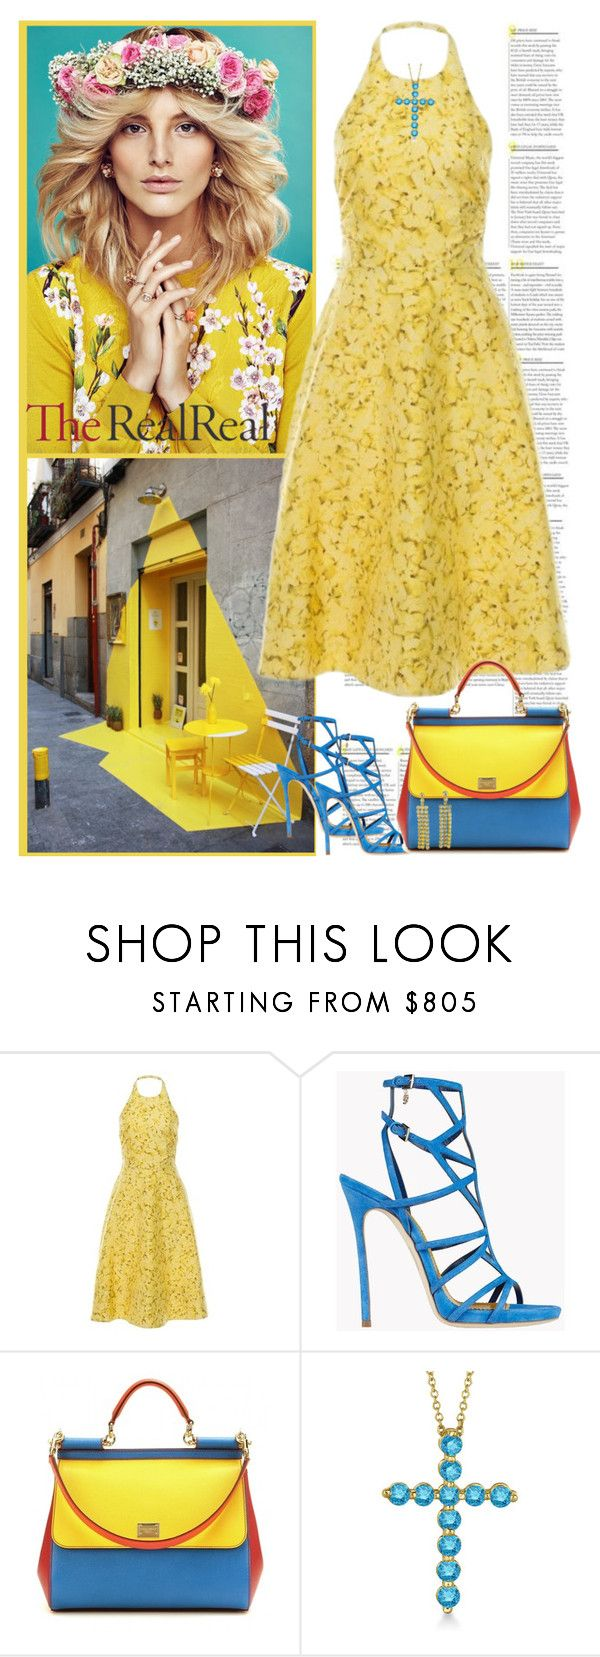 Summer Party Dressing With The RealReal: Contest Entry by radamorrison on Polyvore featuring Giambattista Valli, Dolce&Gabbana, CÉLINE, Allurez and Dsquared2